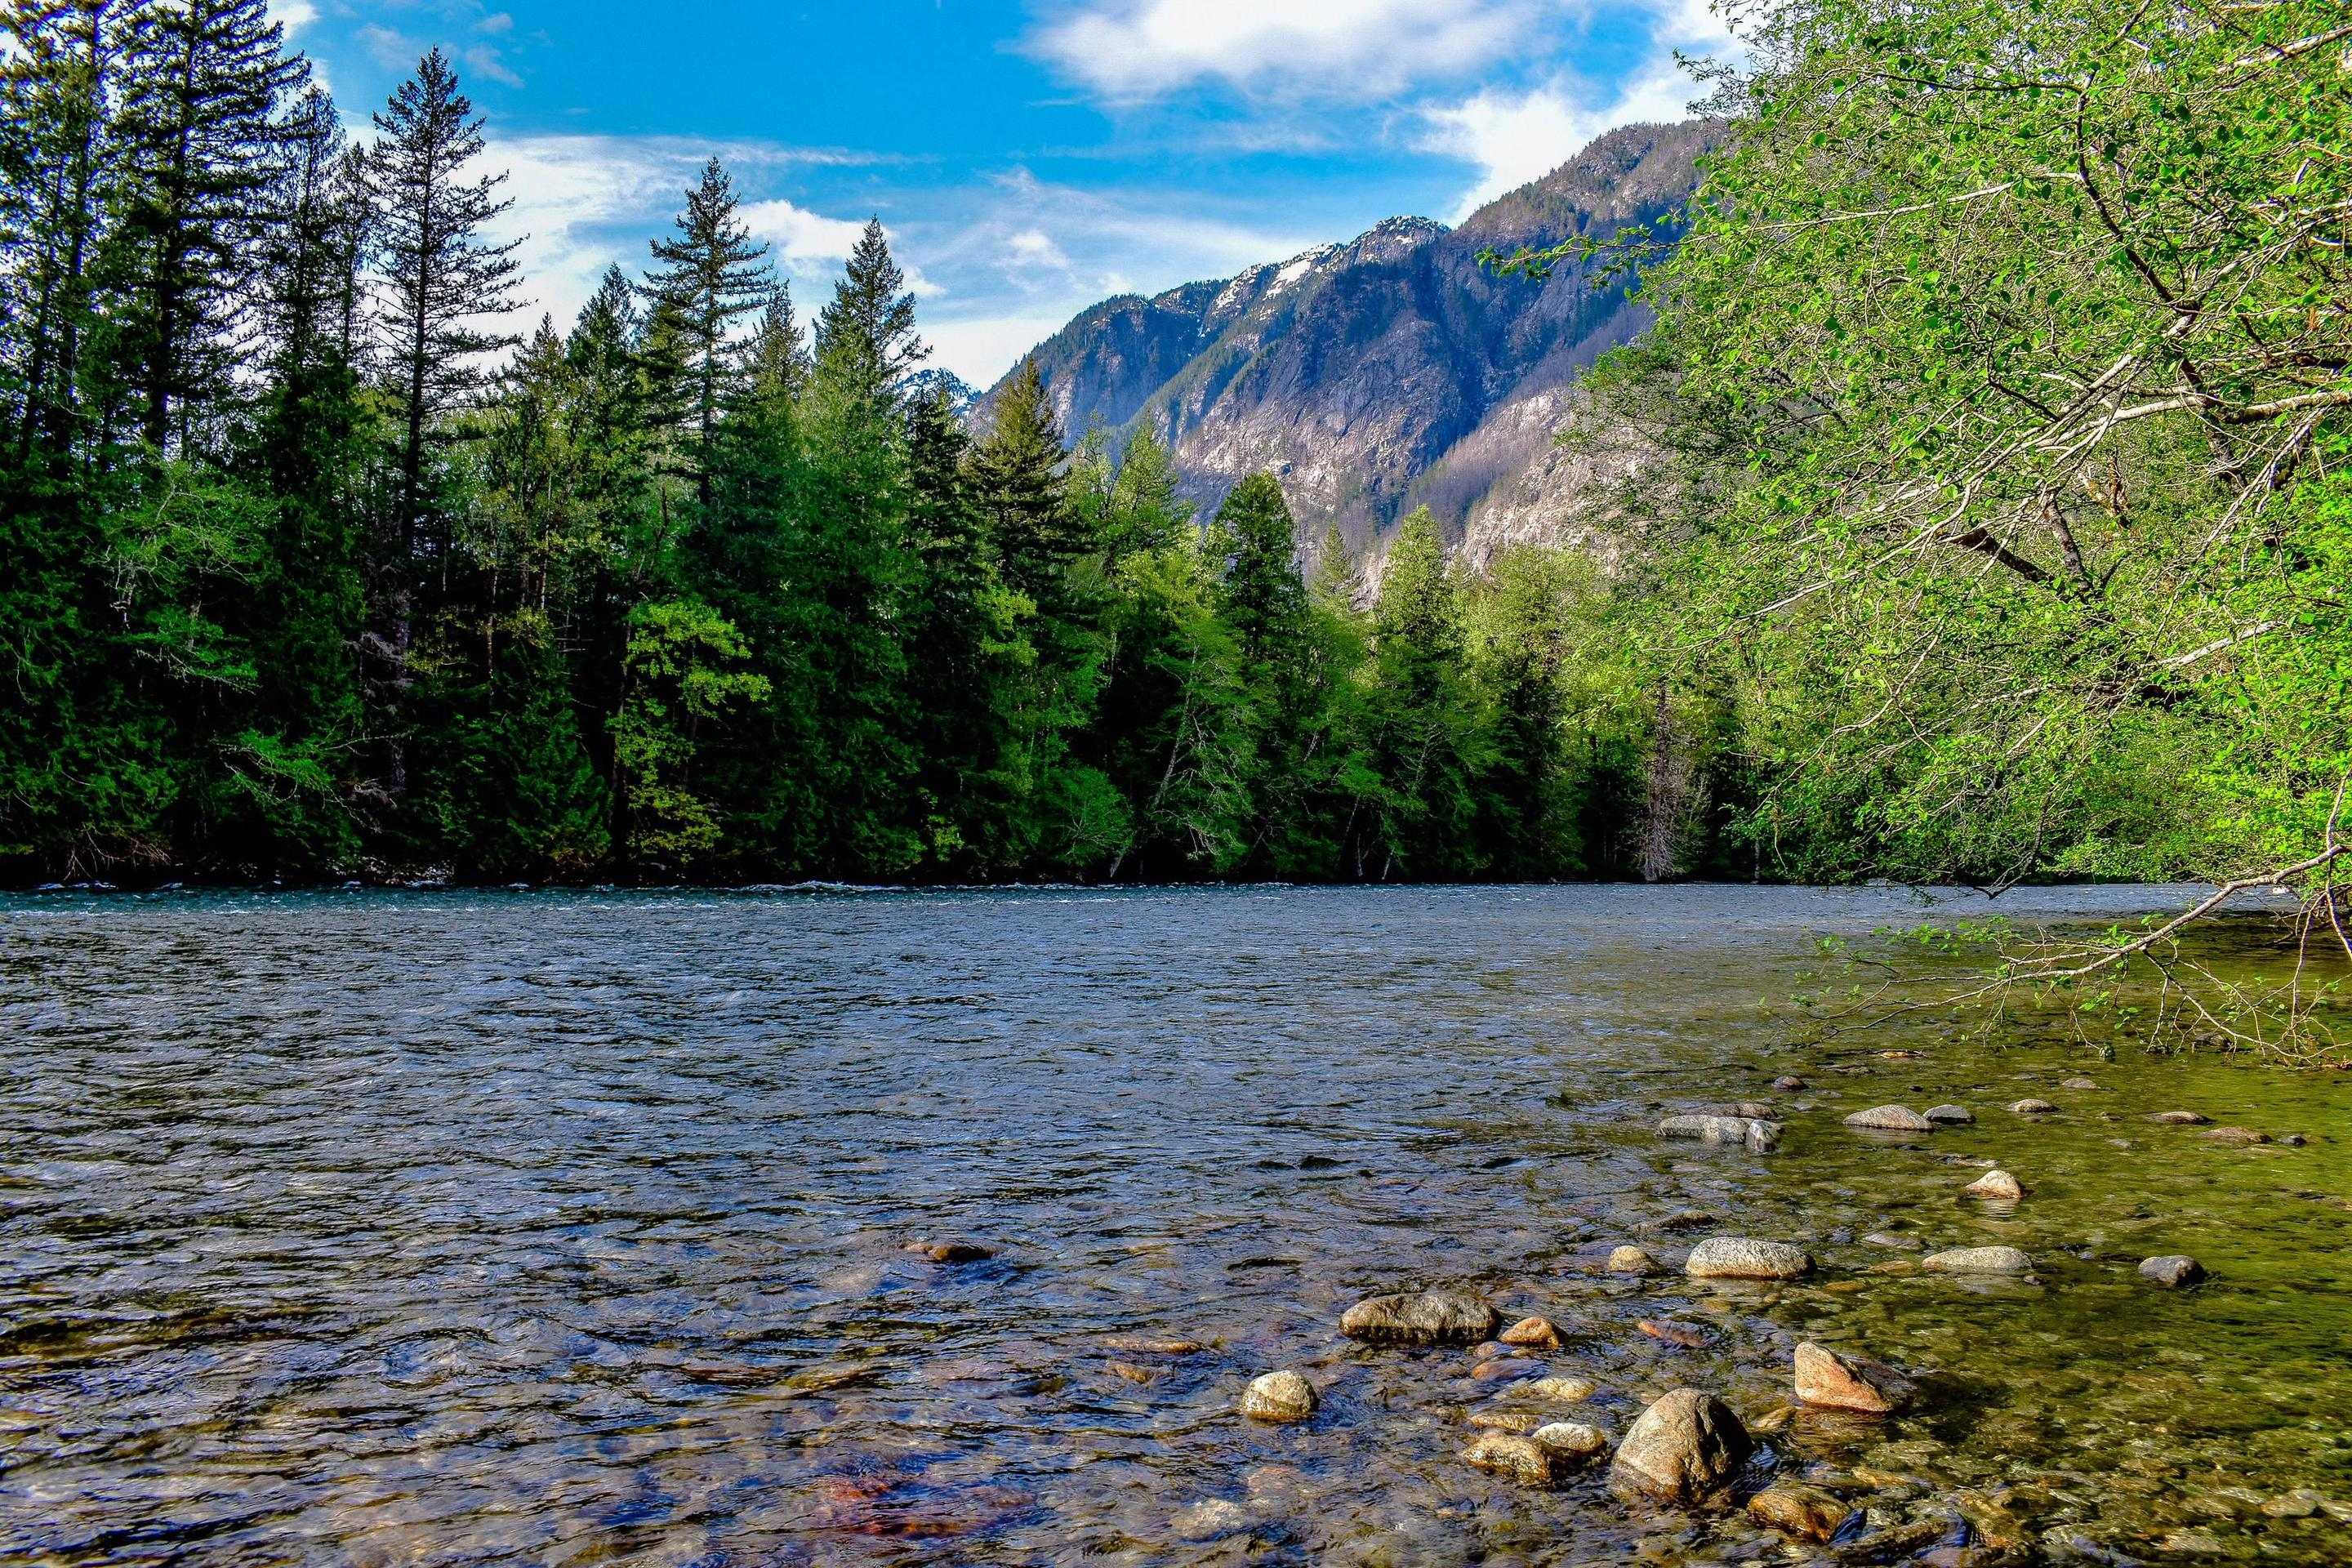 Placid river bordered by lush forests with tall mountains in the distanceSeveral of the trails near the Campground follow the banks of the Skagit River for a distance